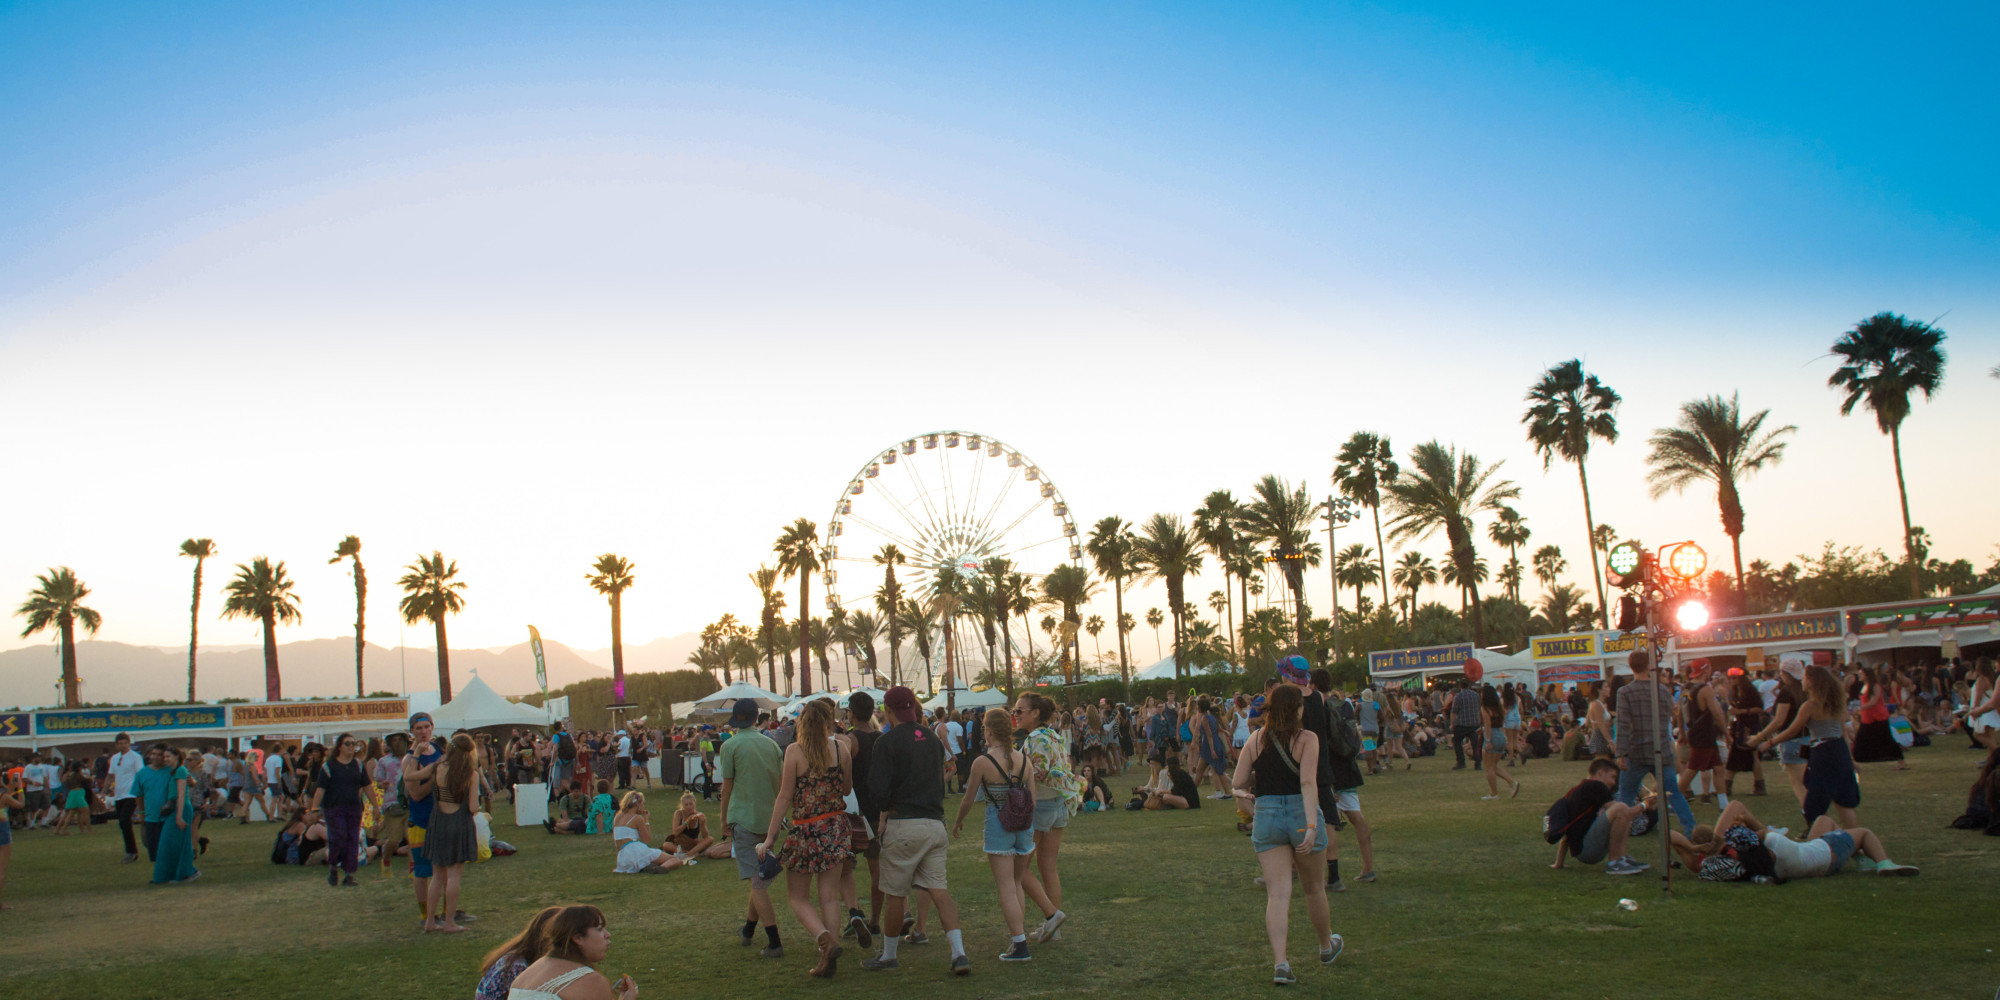 m Followers, 3 Following, 1, Posts - See Instagram photos and videos from Coachella (@coachella).